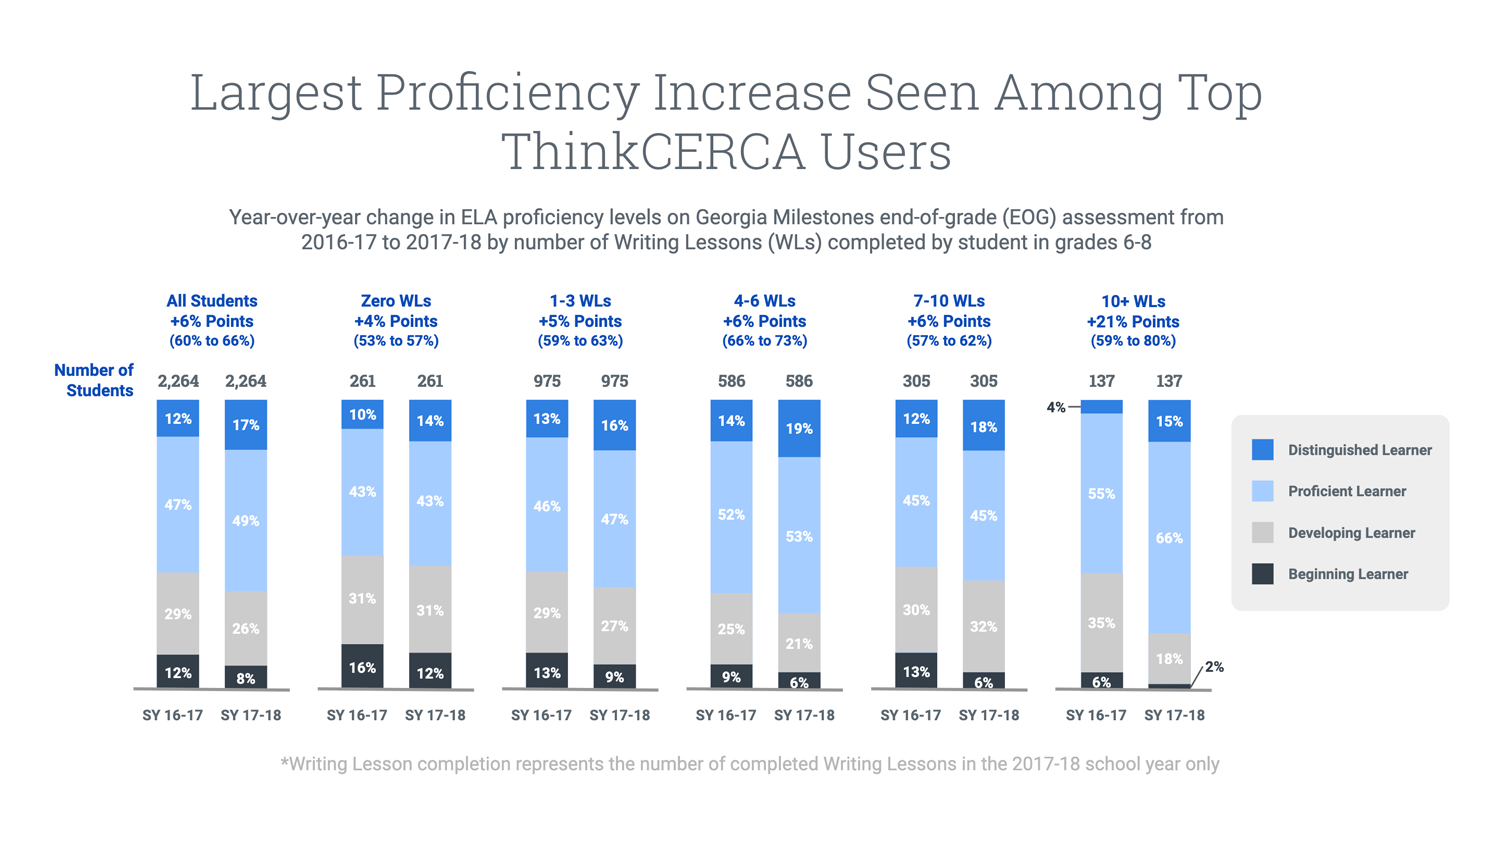 Fayette-ThinkCERCA-2019-Case-Study_Proficiency-increase